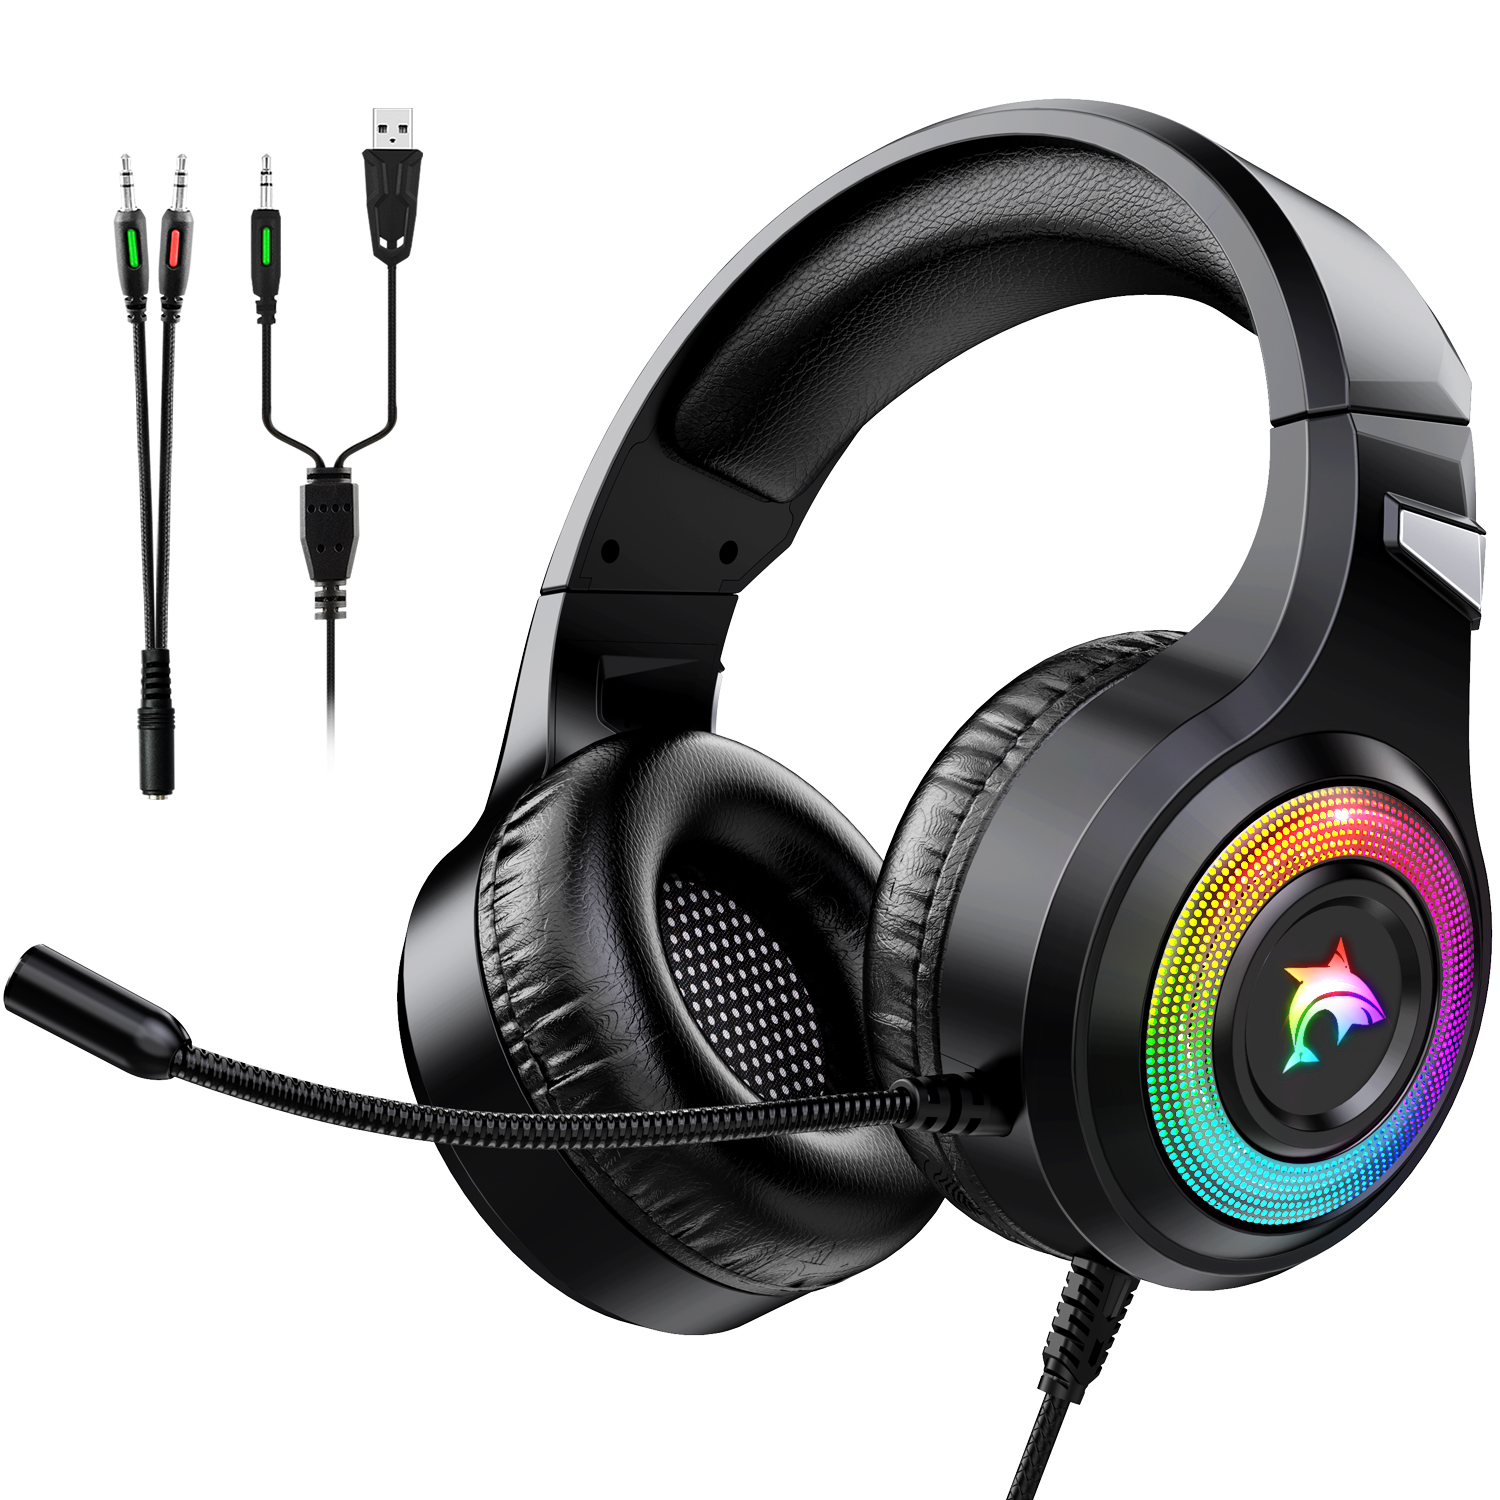 Game Headphones Bass Stereo Over-Head Earphone Casque PC Laptop Microphone Wired RGB Gaming Headsetst For Computer PS4 Xbox